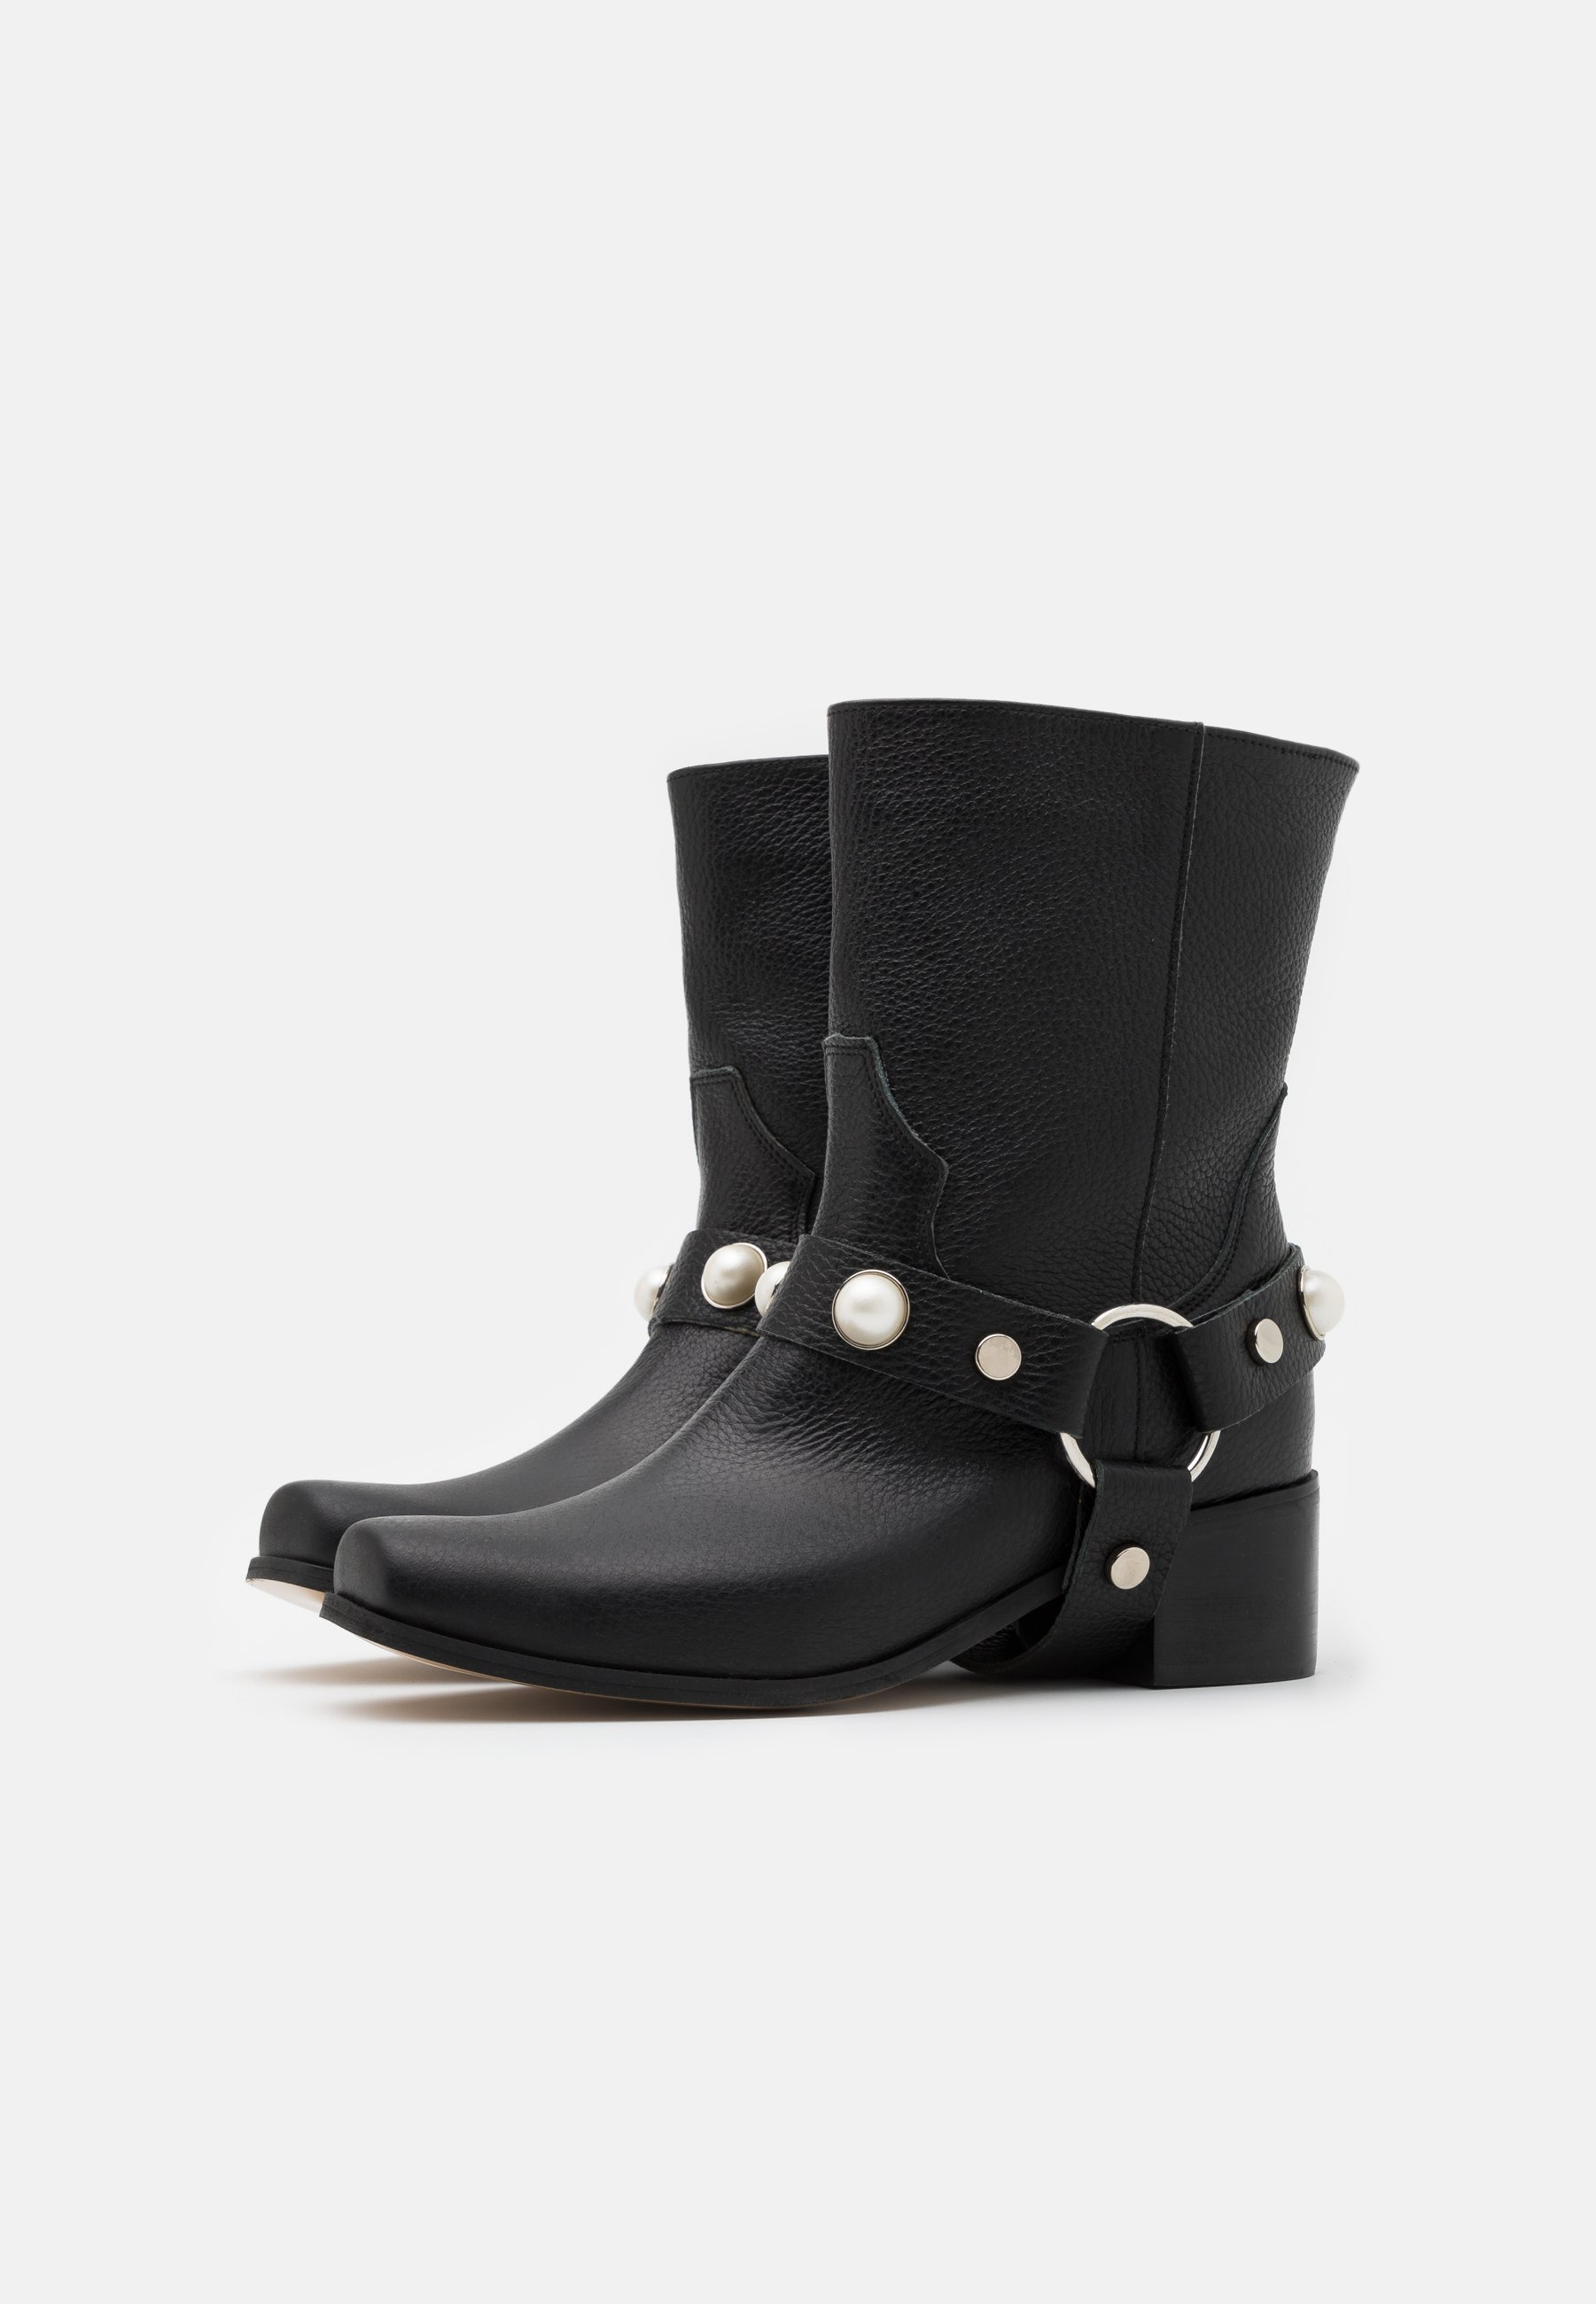 Cheapest Cheapest L37 ONE LAST TIME - Cowboy/biker ankle boot - black | women's shoes 2020 sagPh